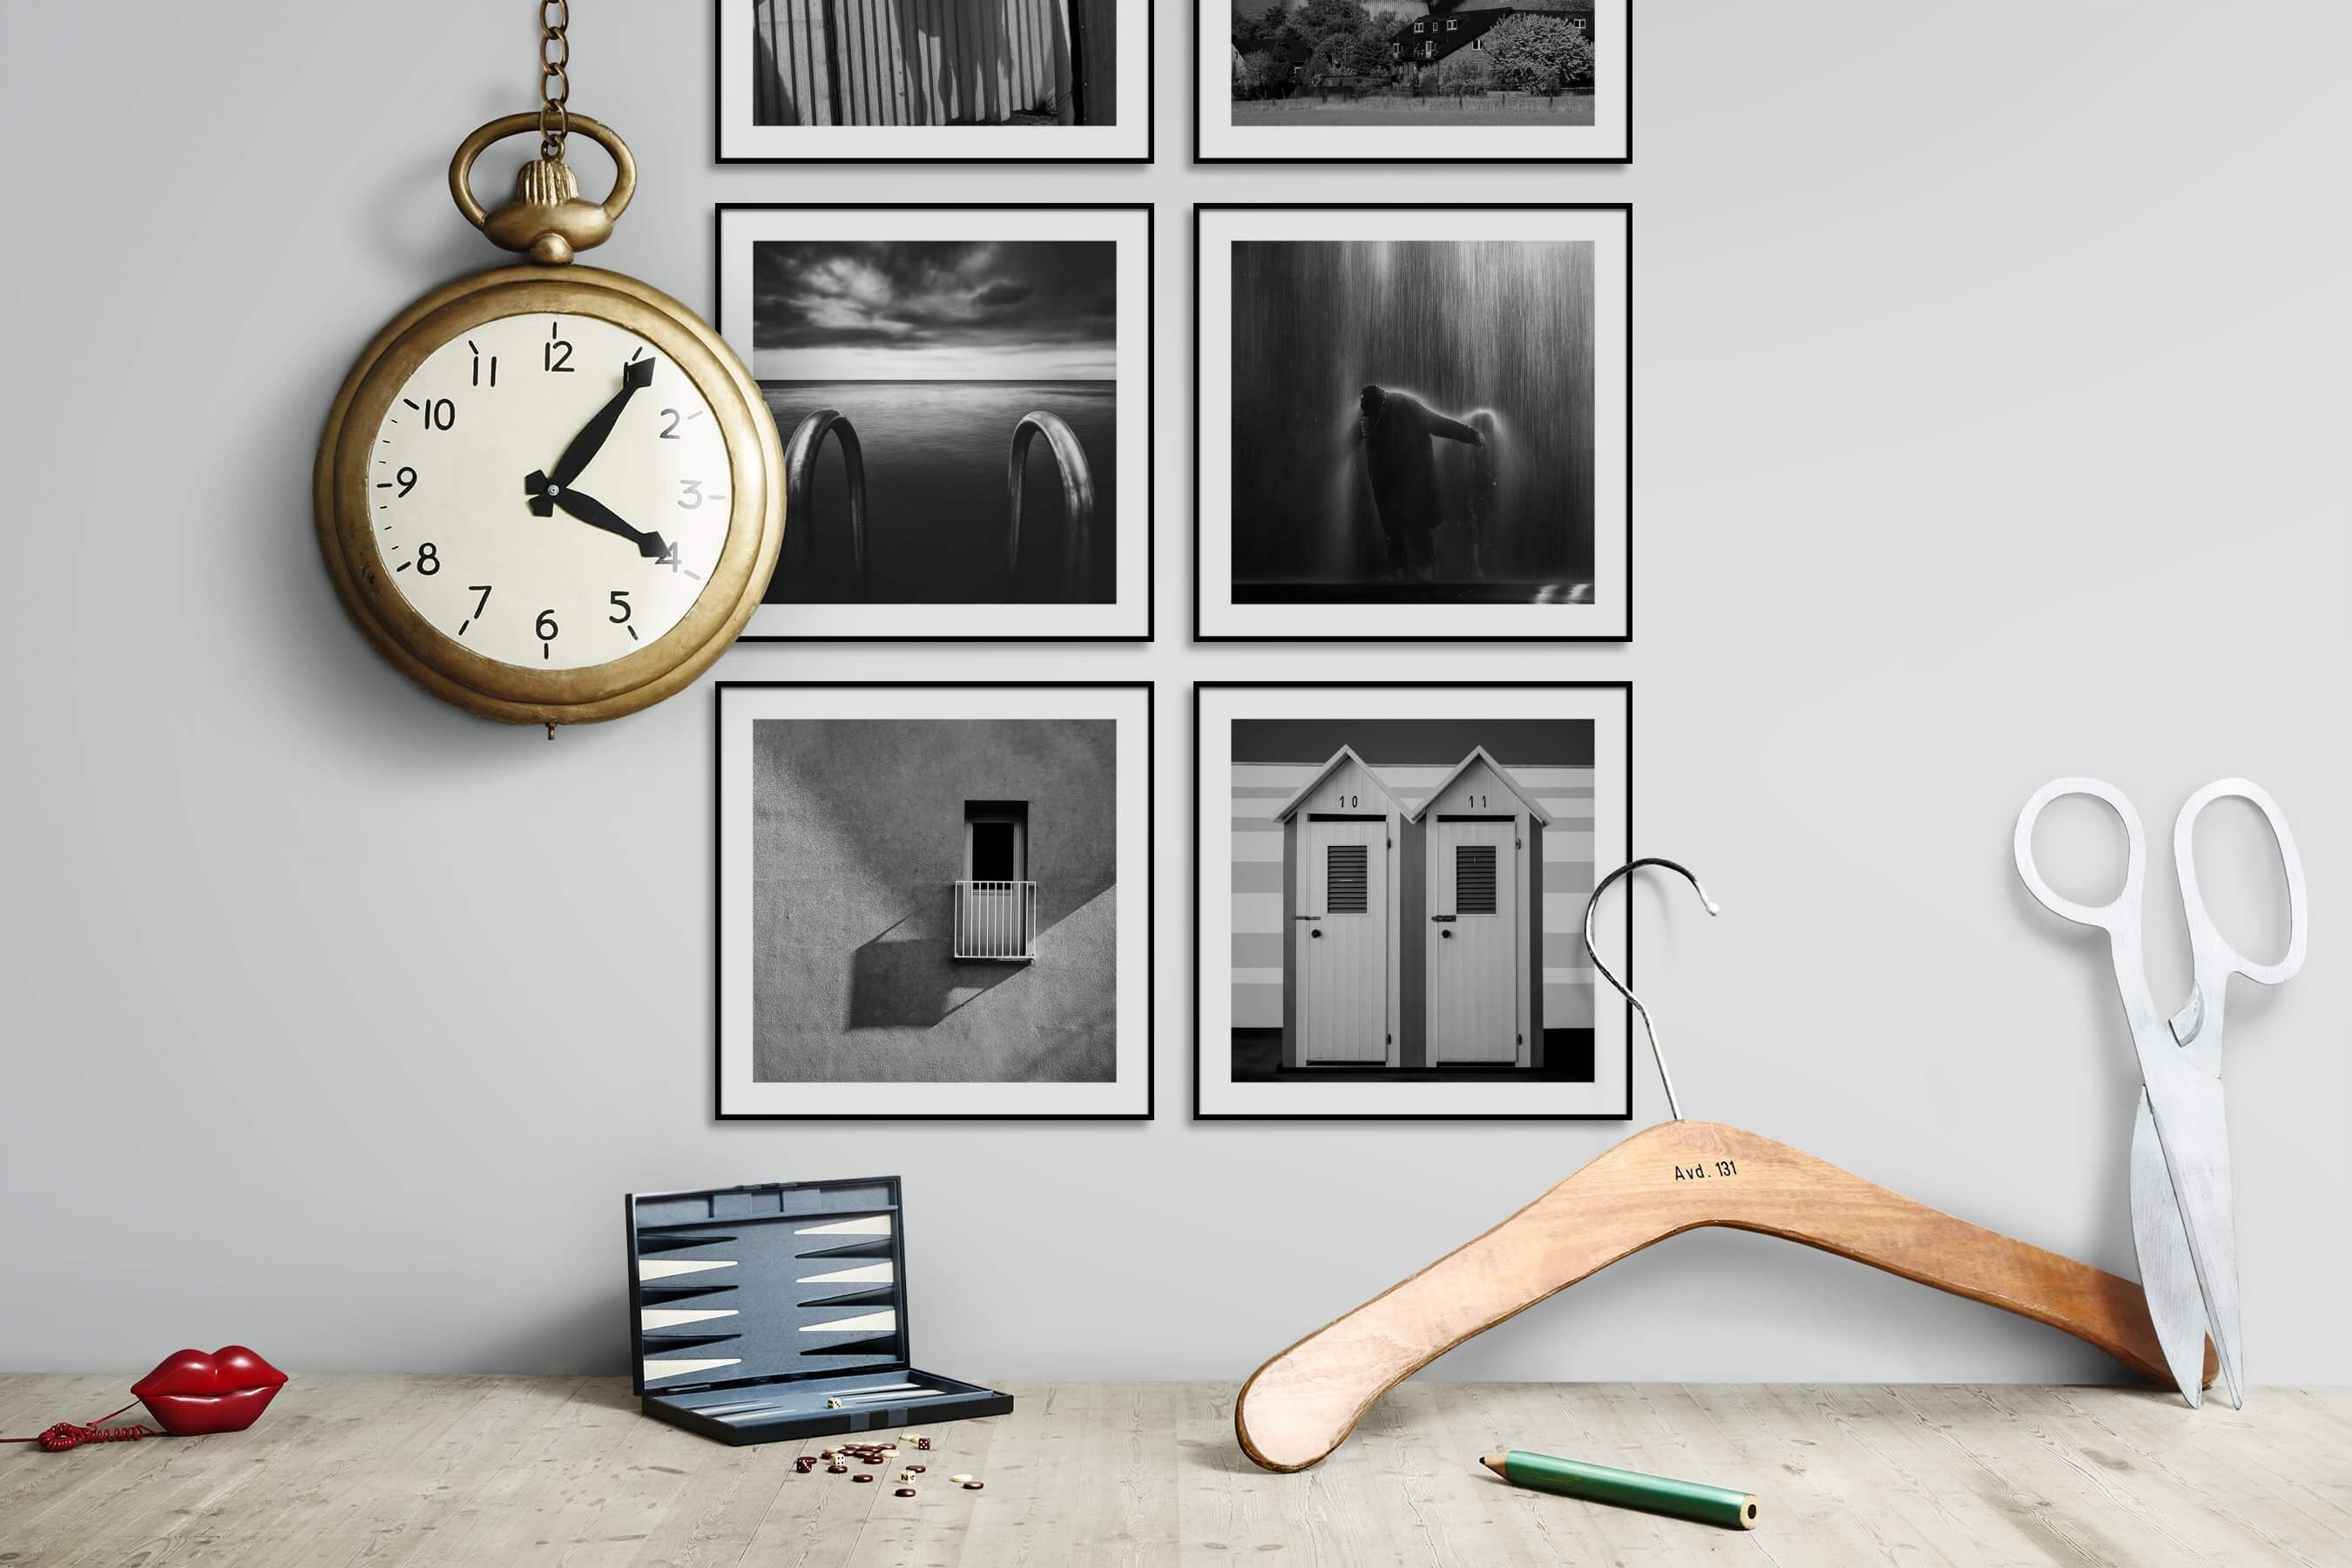 Gallery wall idea with six framed pictures arranged on a wall depicting Black & White, Animals, Beach & Water, Artsy, For the Minimalist, and For the Moderate